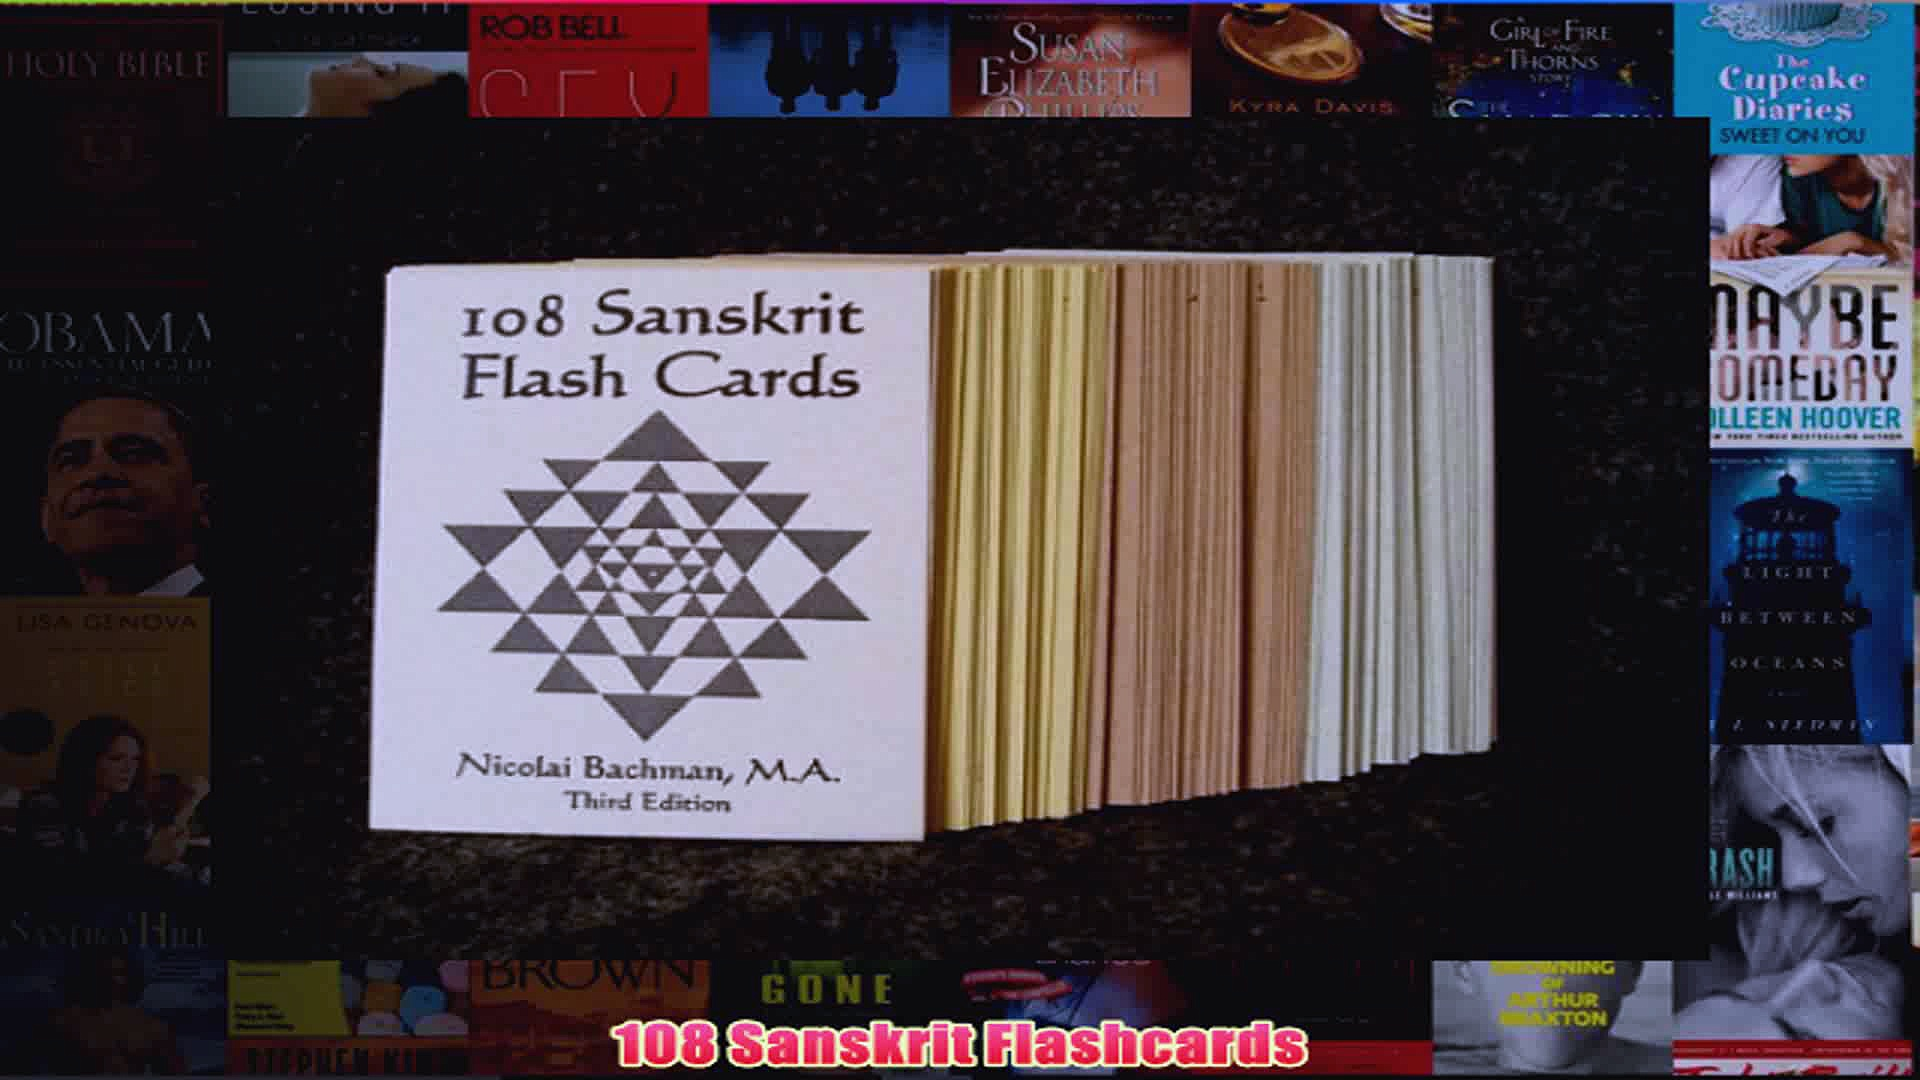 108 Sanskrit Flashcards